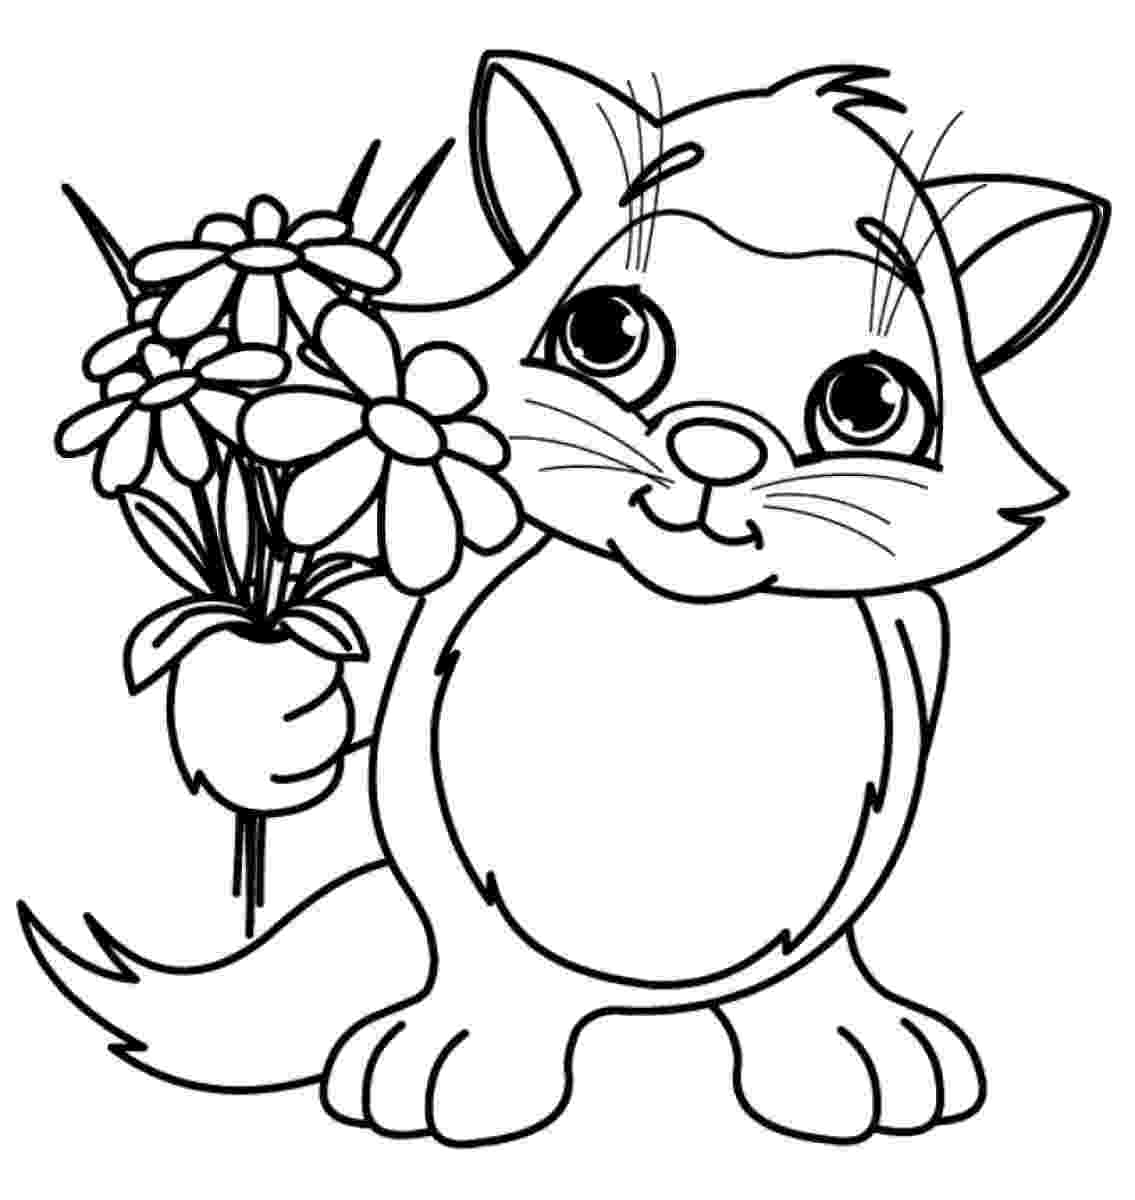 flower colouring pages summer flowers printable coloring pages free large images flower colouring pages